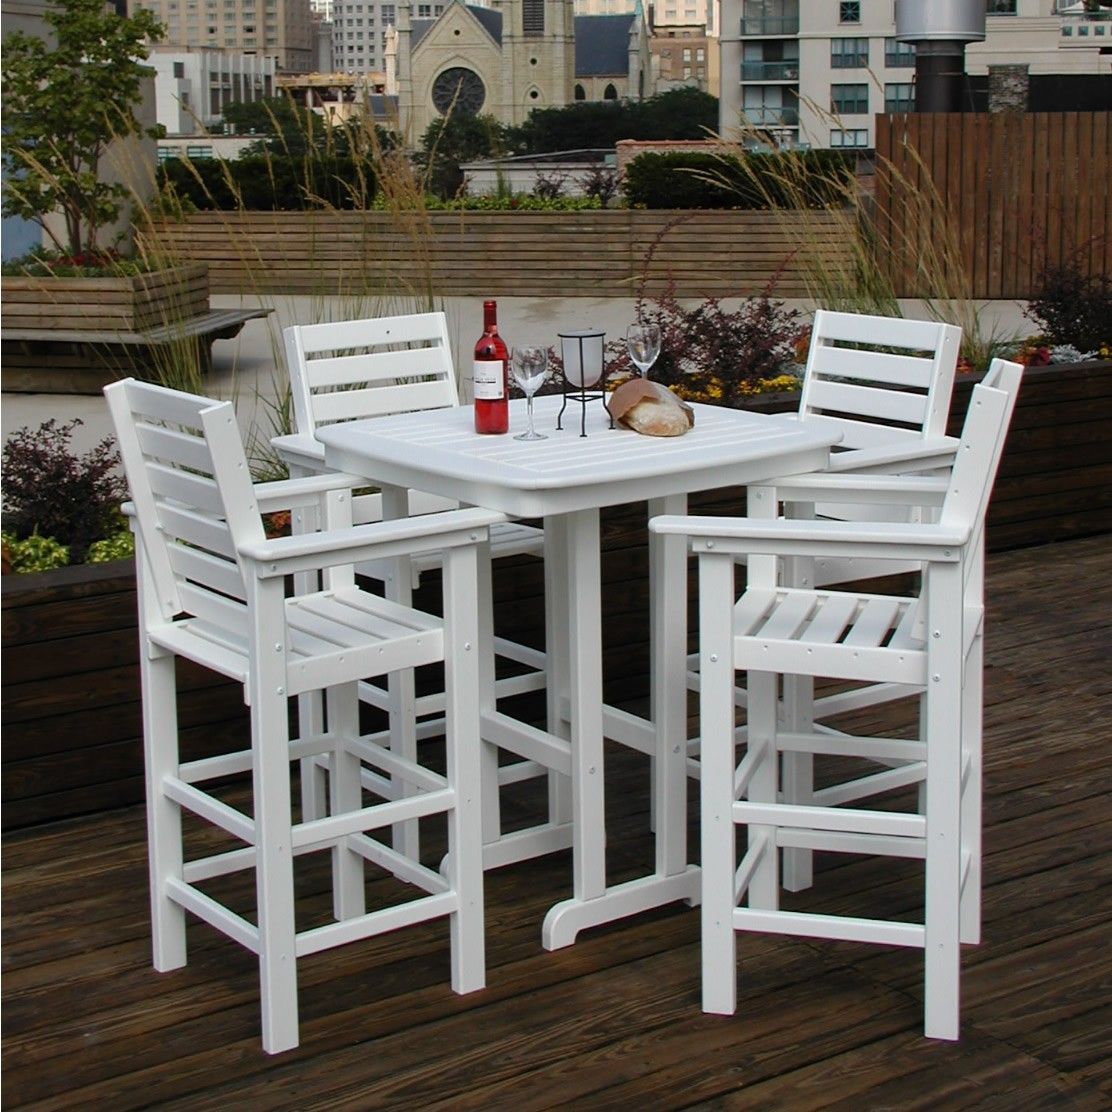 Indoor bistro table and chairs - Tall Bistro Table Settall Bistro Table Set Home Office Pinterest Painted Outdoor